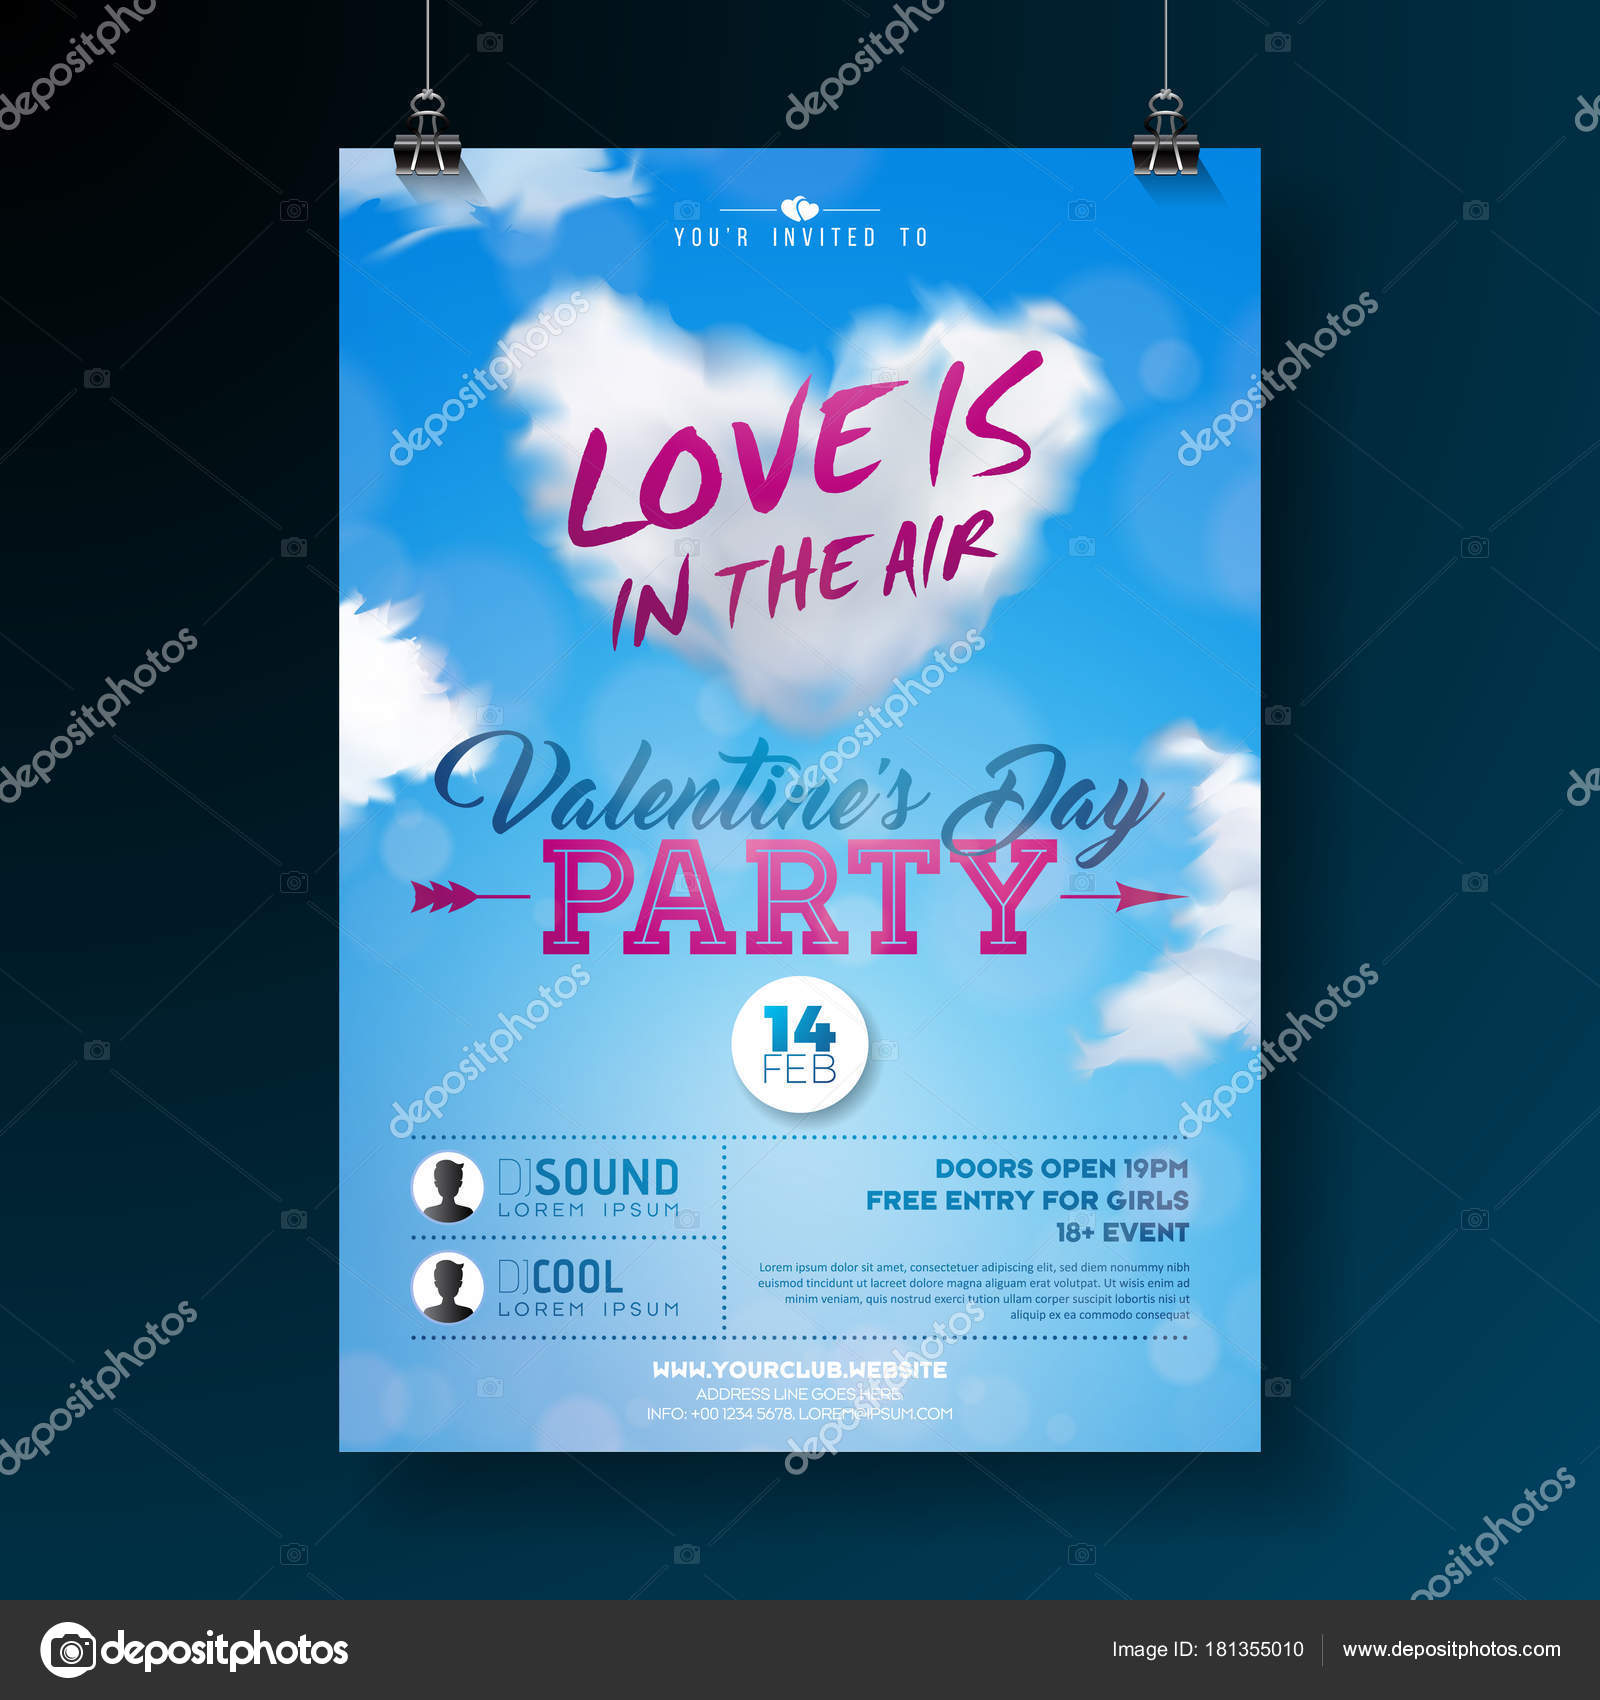 Valentines Day Party Flyer Design With Typography And Cloud Heart On Blue Background Vector Love Is In The Air Celebration Poster Template For Invitation